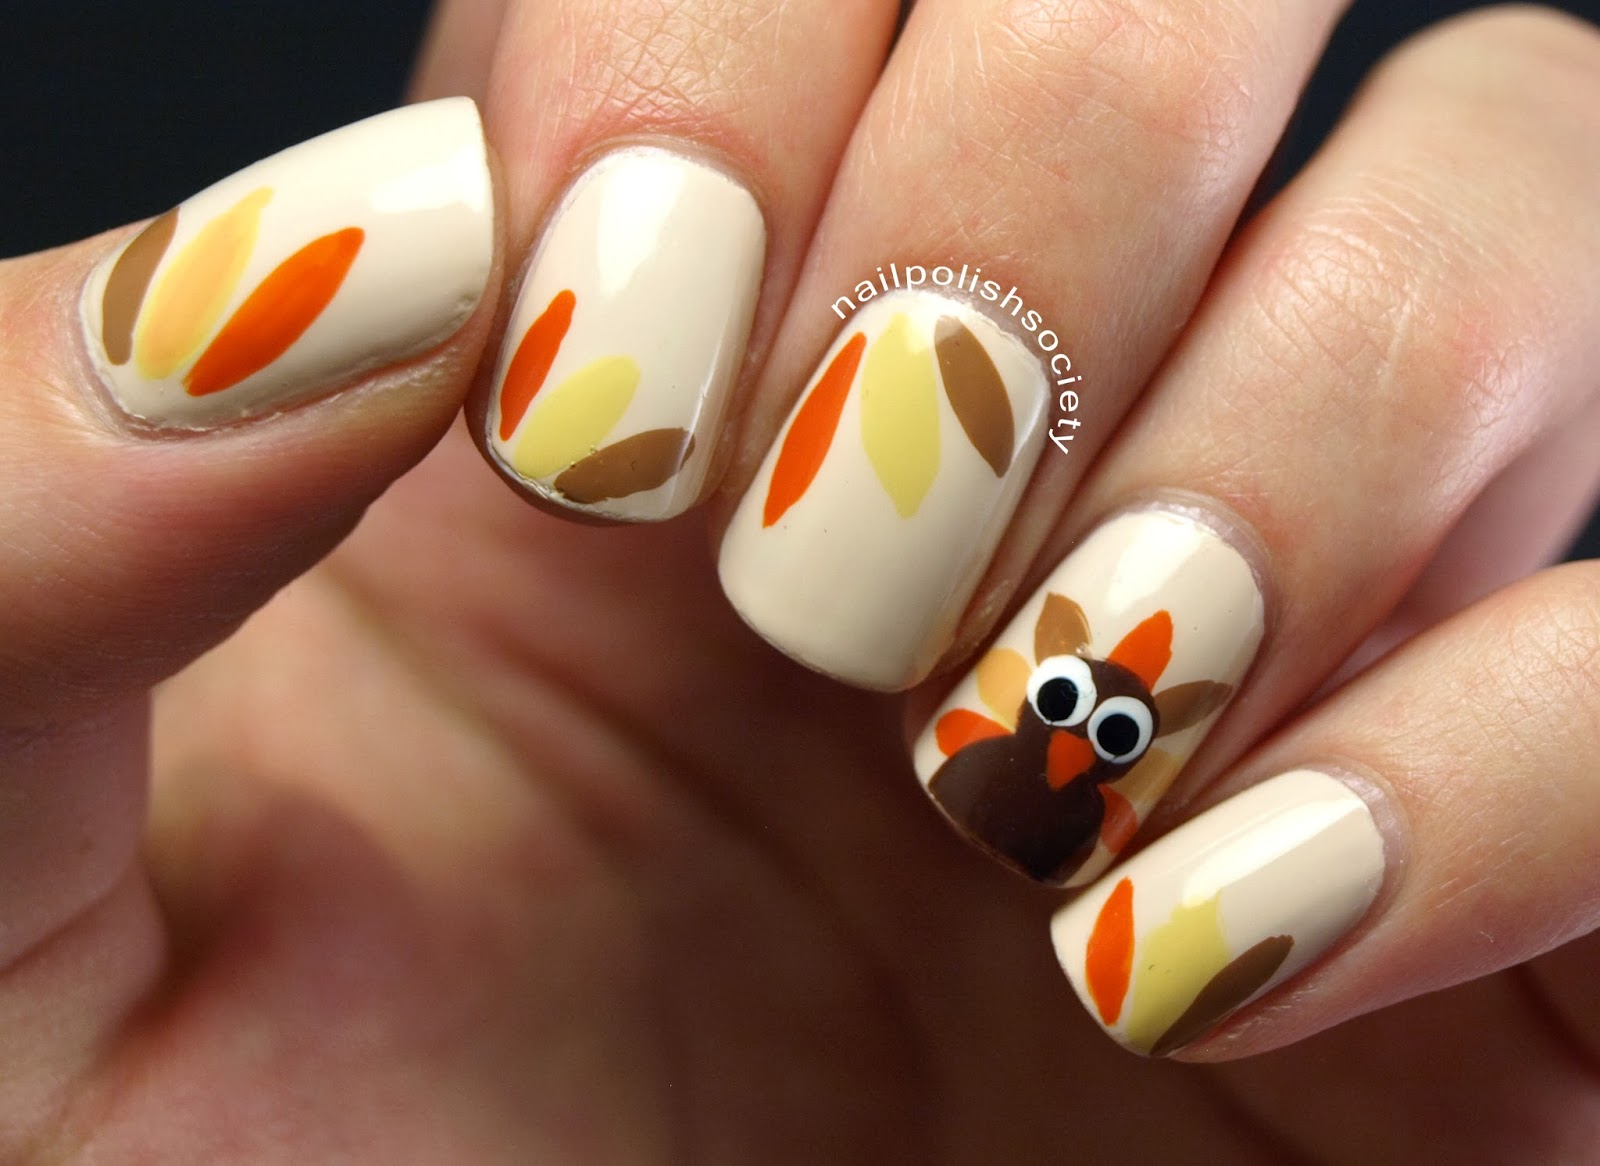 Nail Polish Society: Thanksgiving Turkey Nails